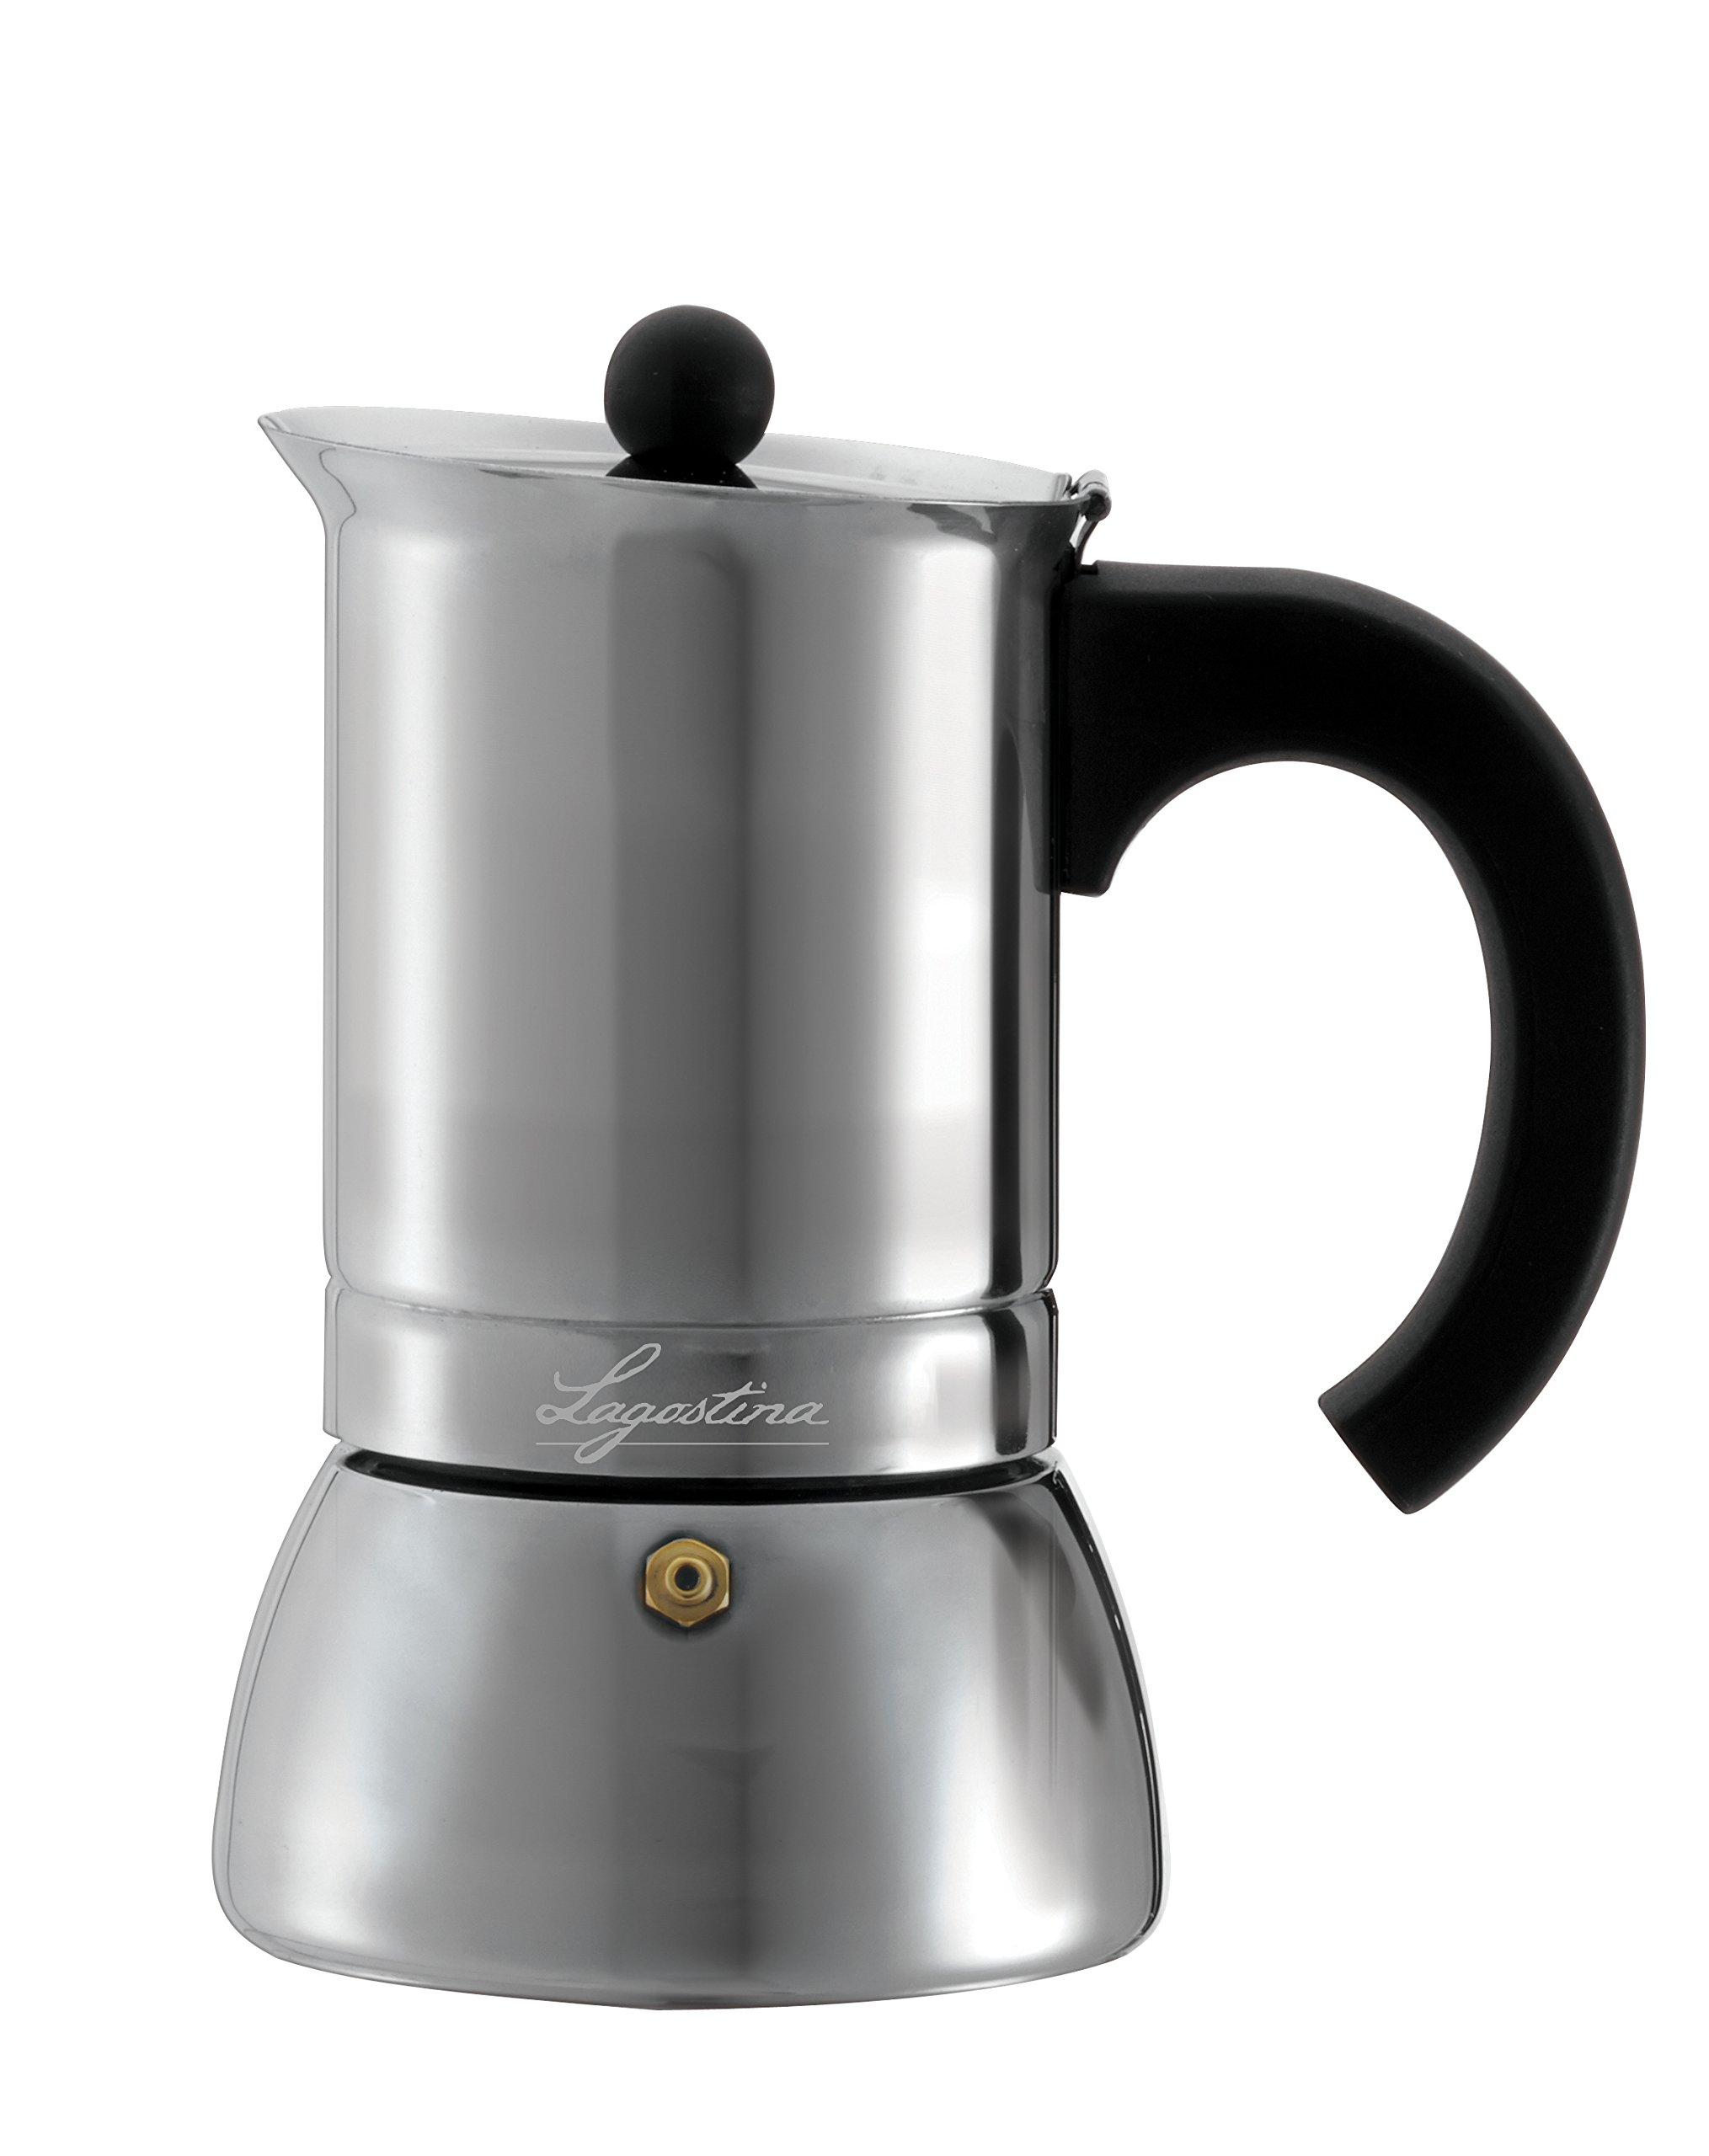 Lagostina T9910464 Stainless Steel Espresso Coffee Maker, 6-Cup, Silver by Lagostina